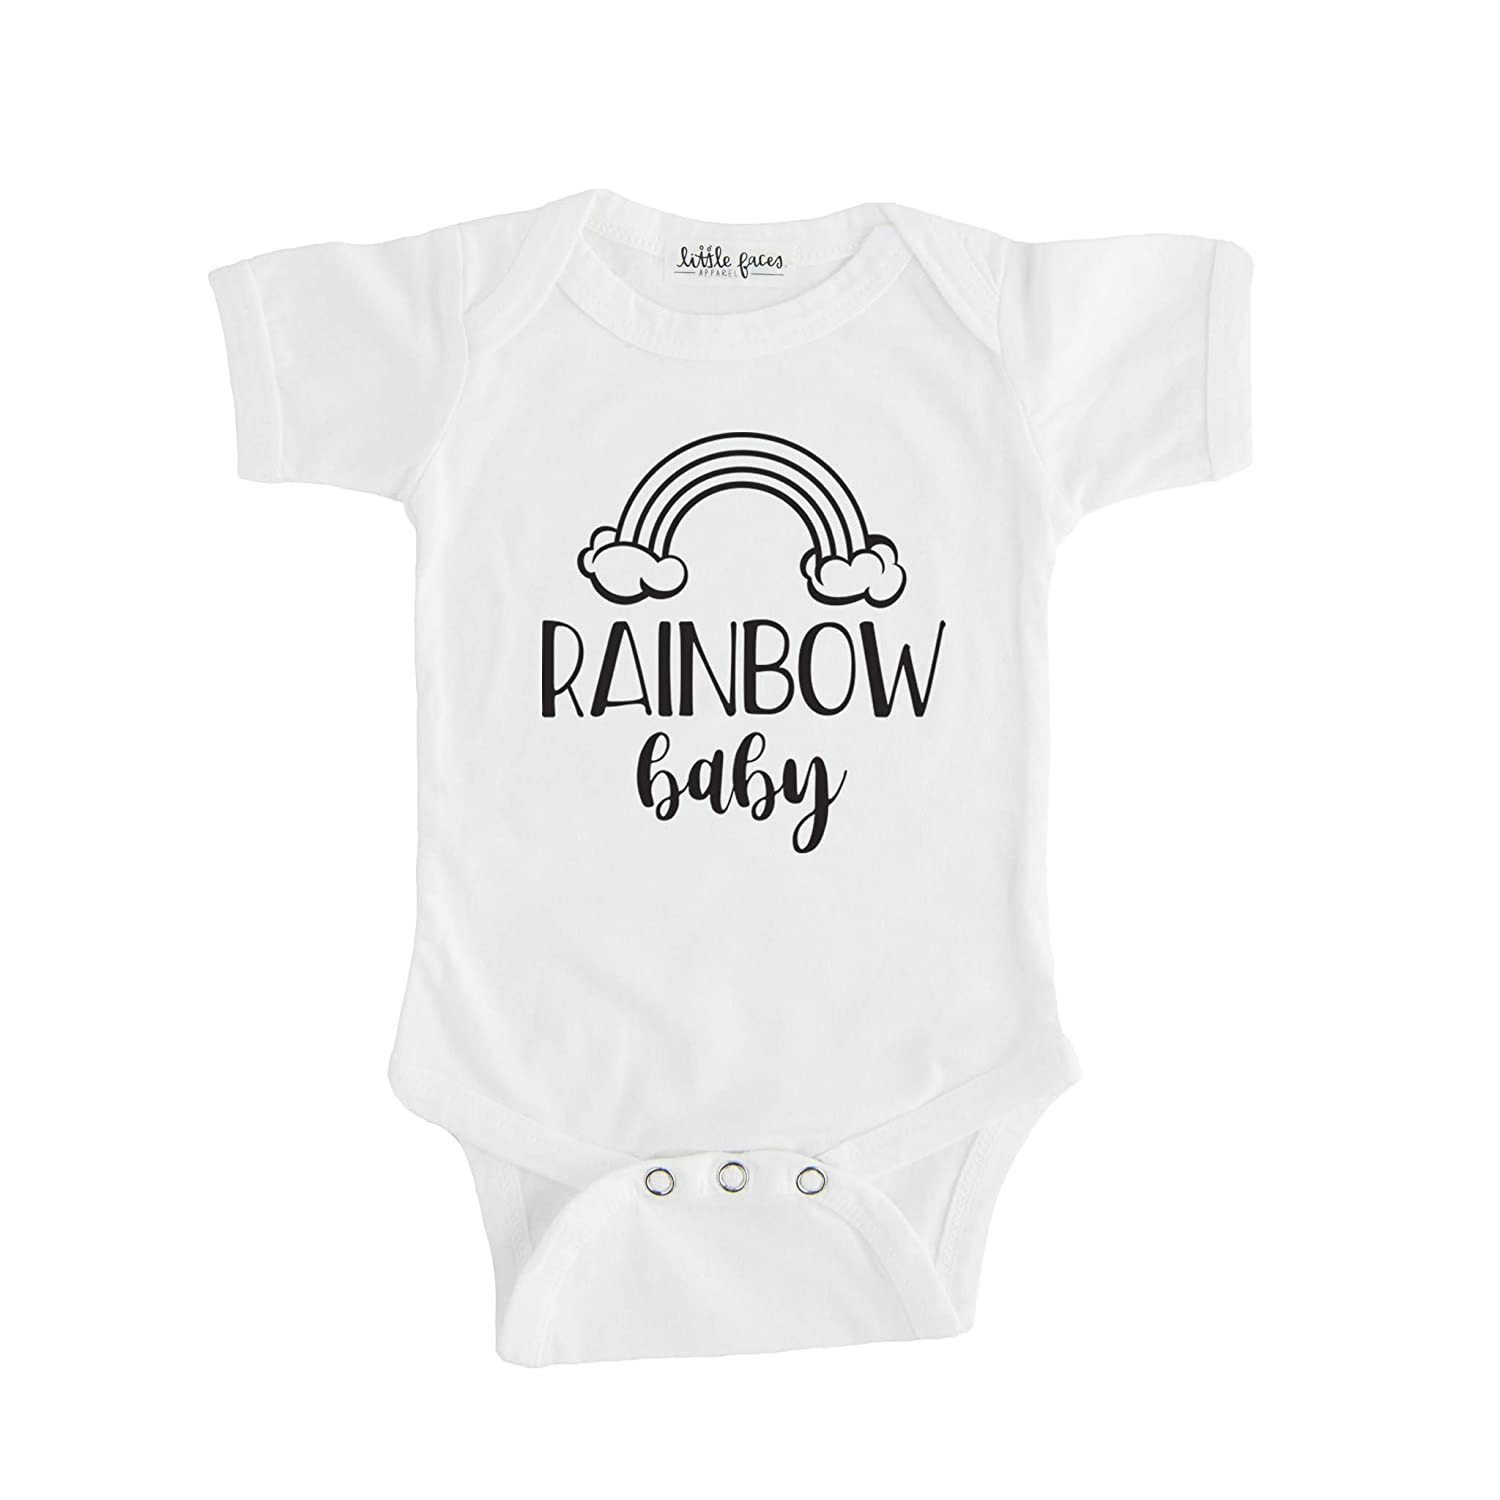 fc1b834333927 Amazon.com: Little Faces Apparel Rainbow Baby Pregnancy Announcement ...